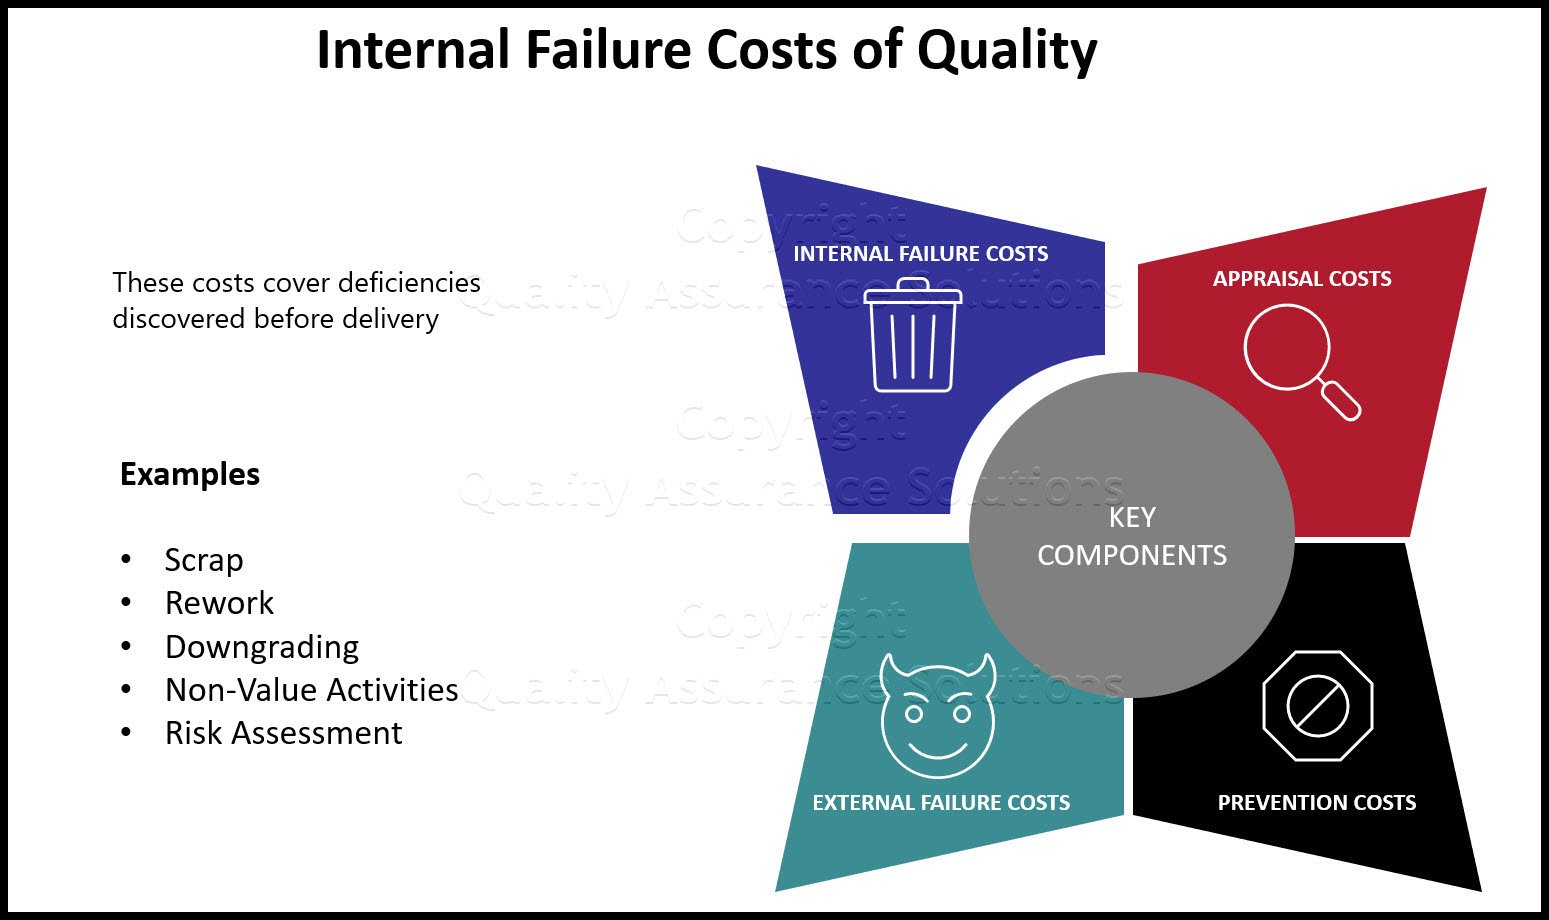 Internal Failure Cost of Quality